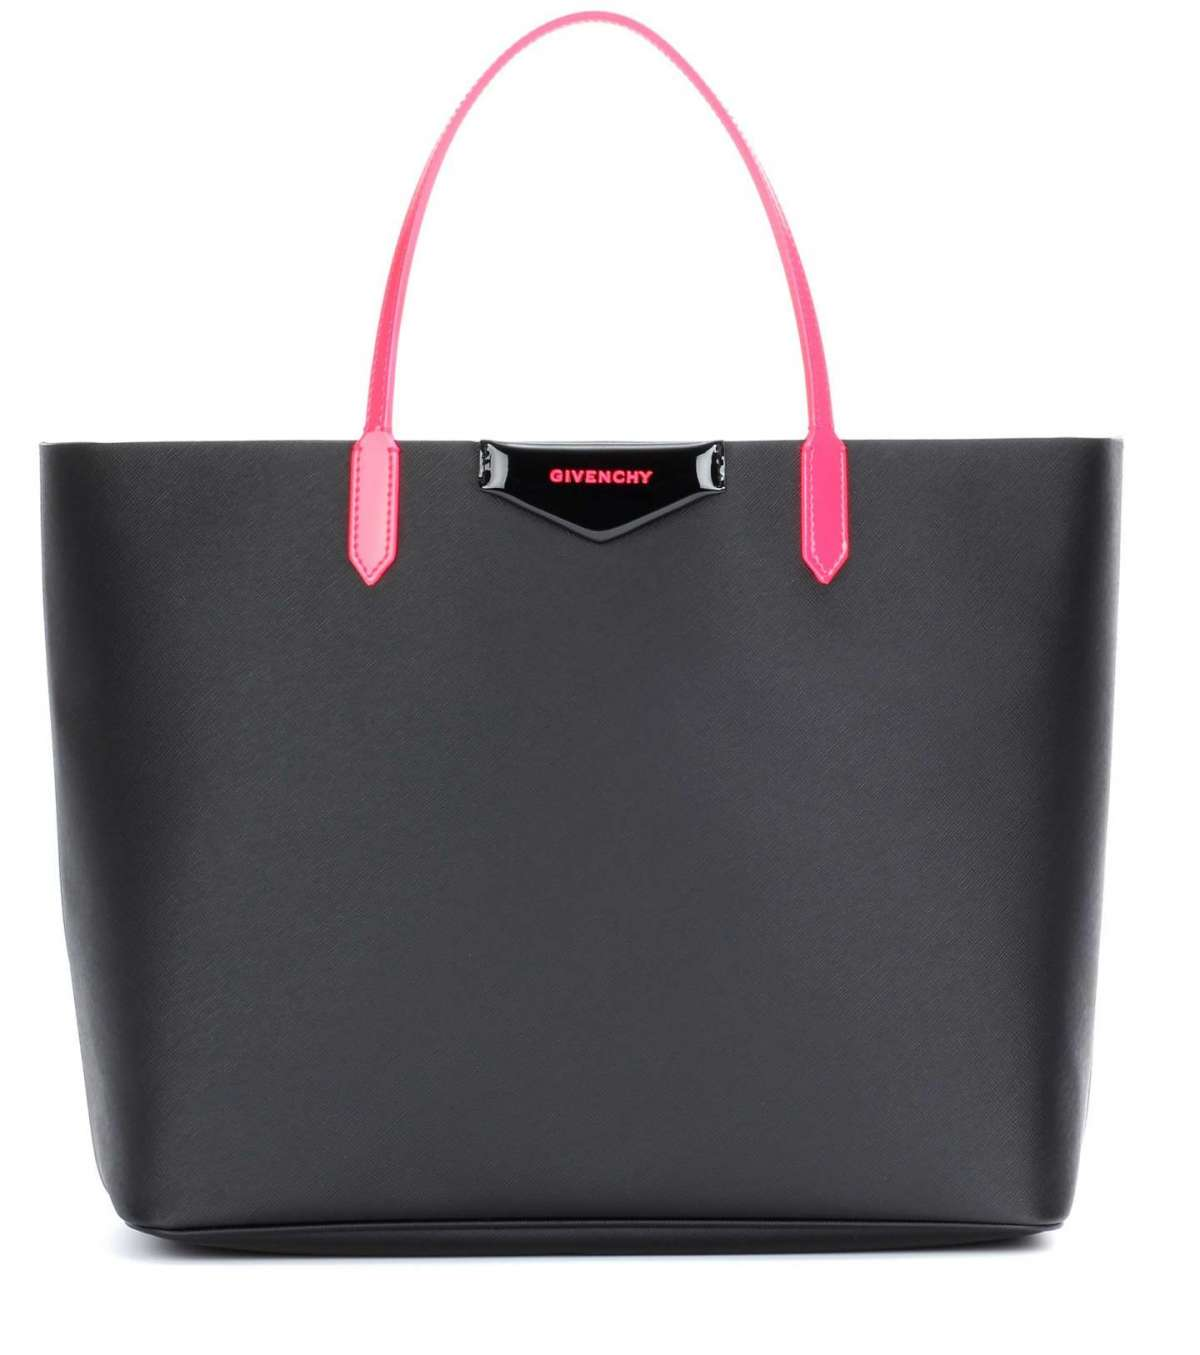 Shopper nera manici rosa Givenchy